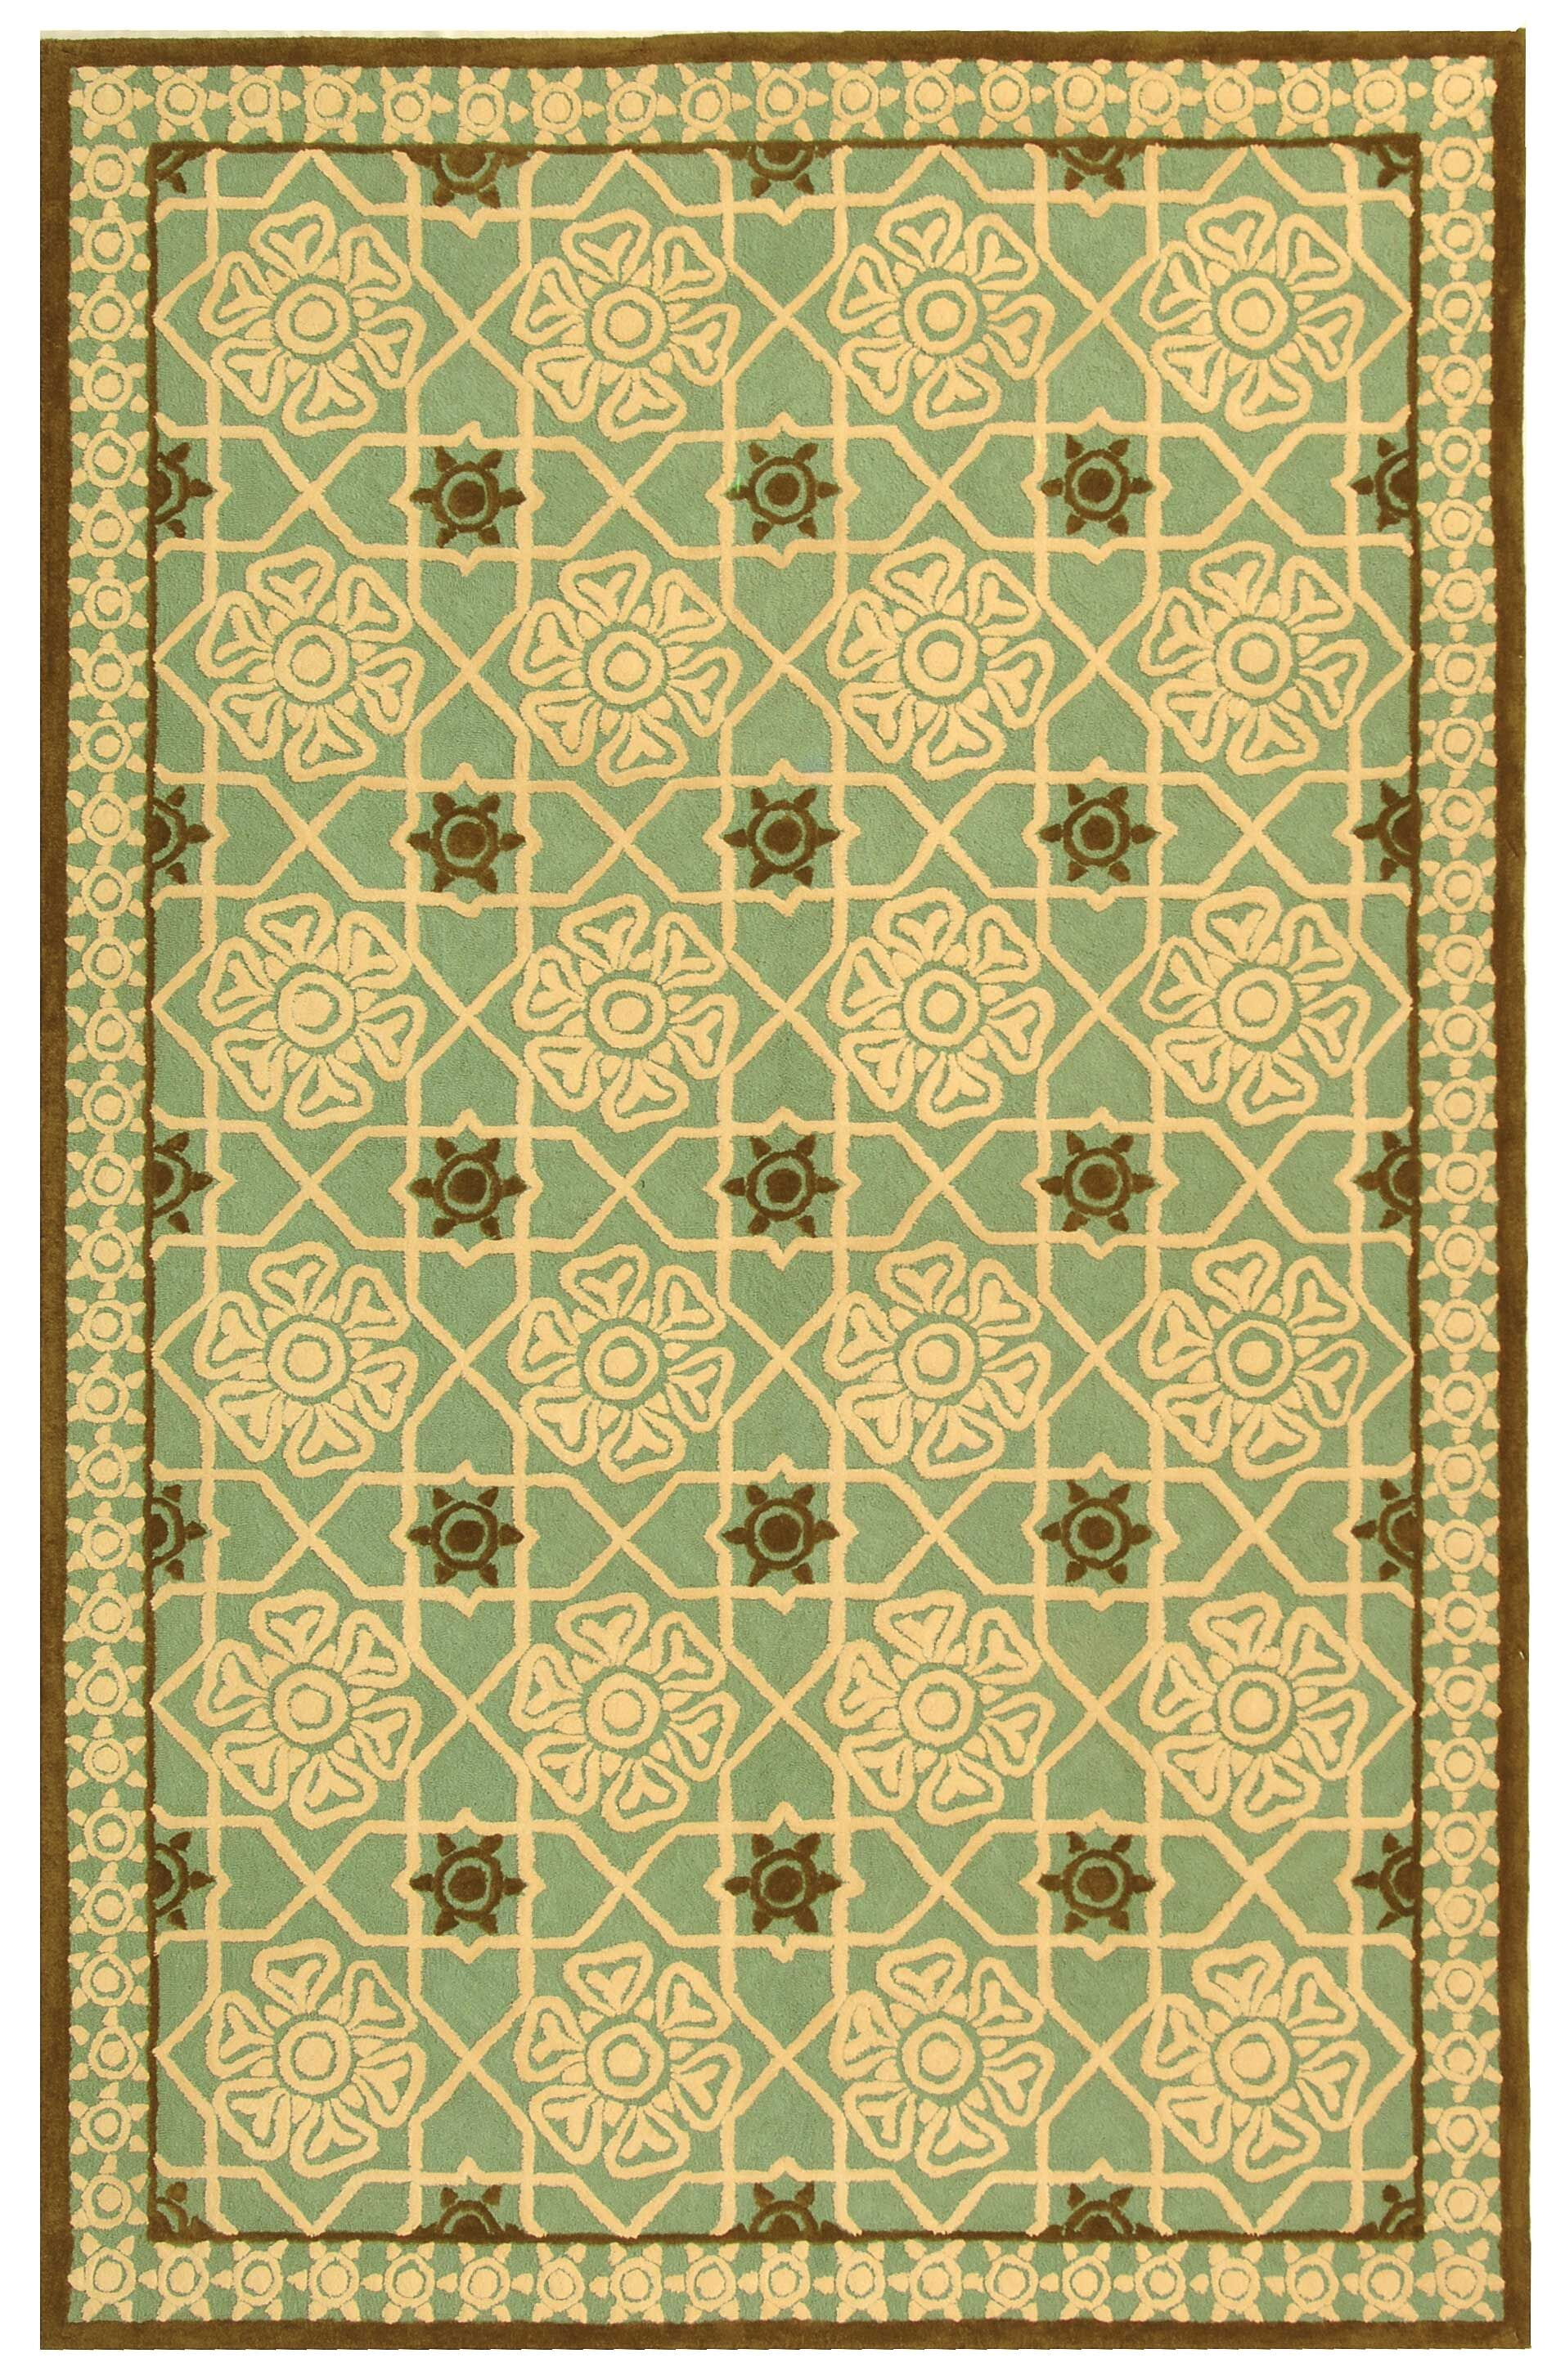 Fullerton Teal/Ivory Geometric Area Rug Rug Size: Rectangle 5'6